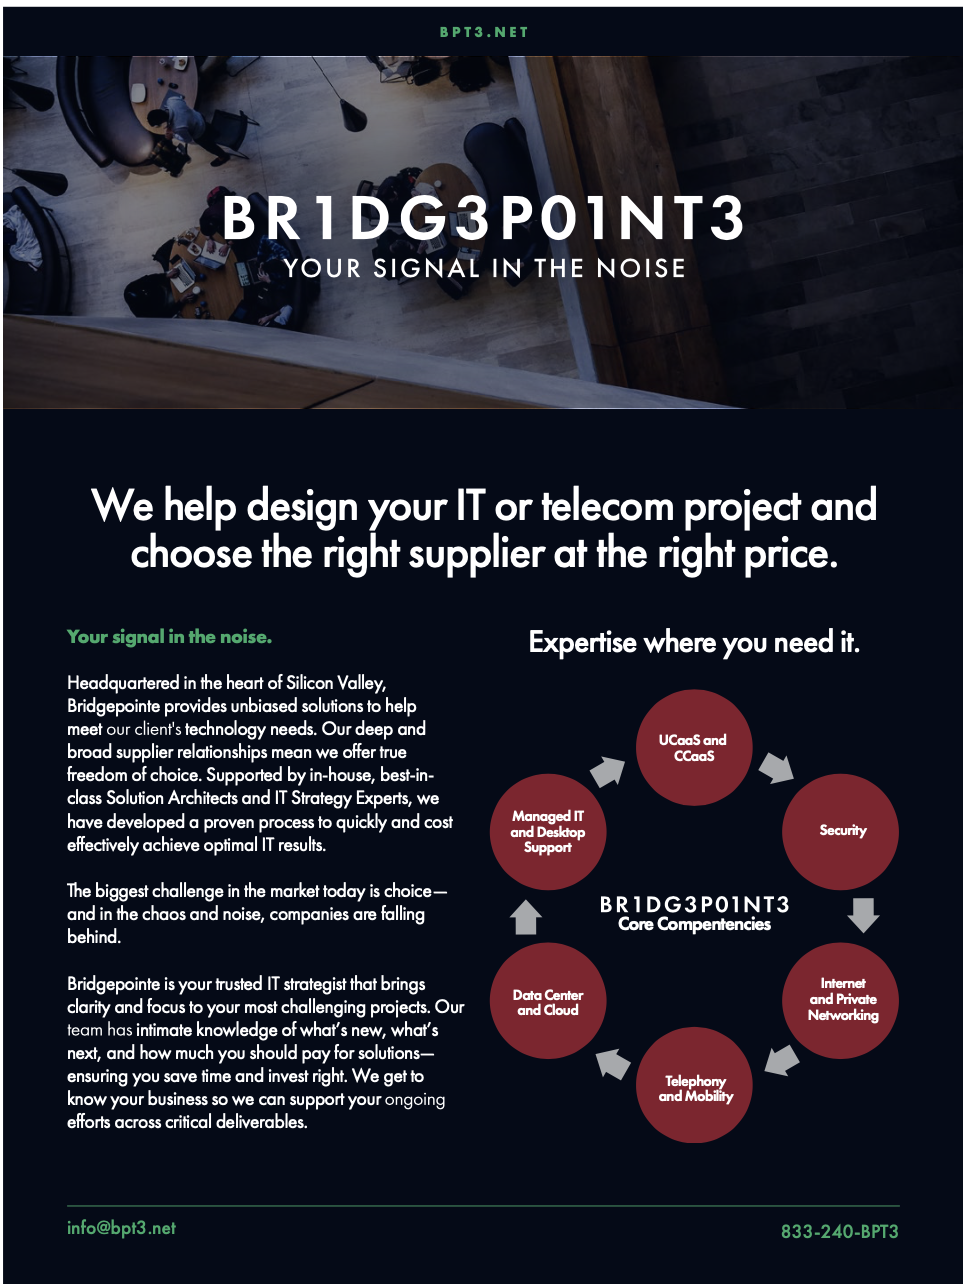 bridgepointe-your-signal-in-the-noise